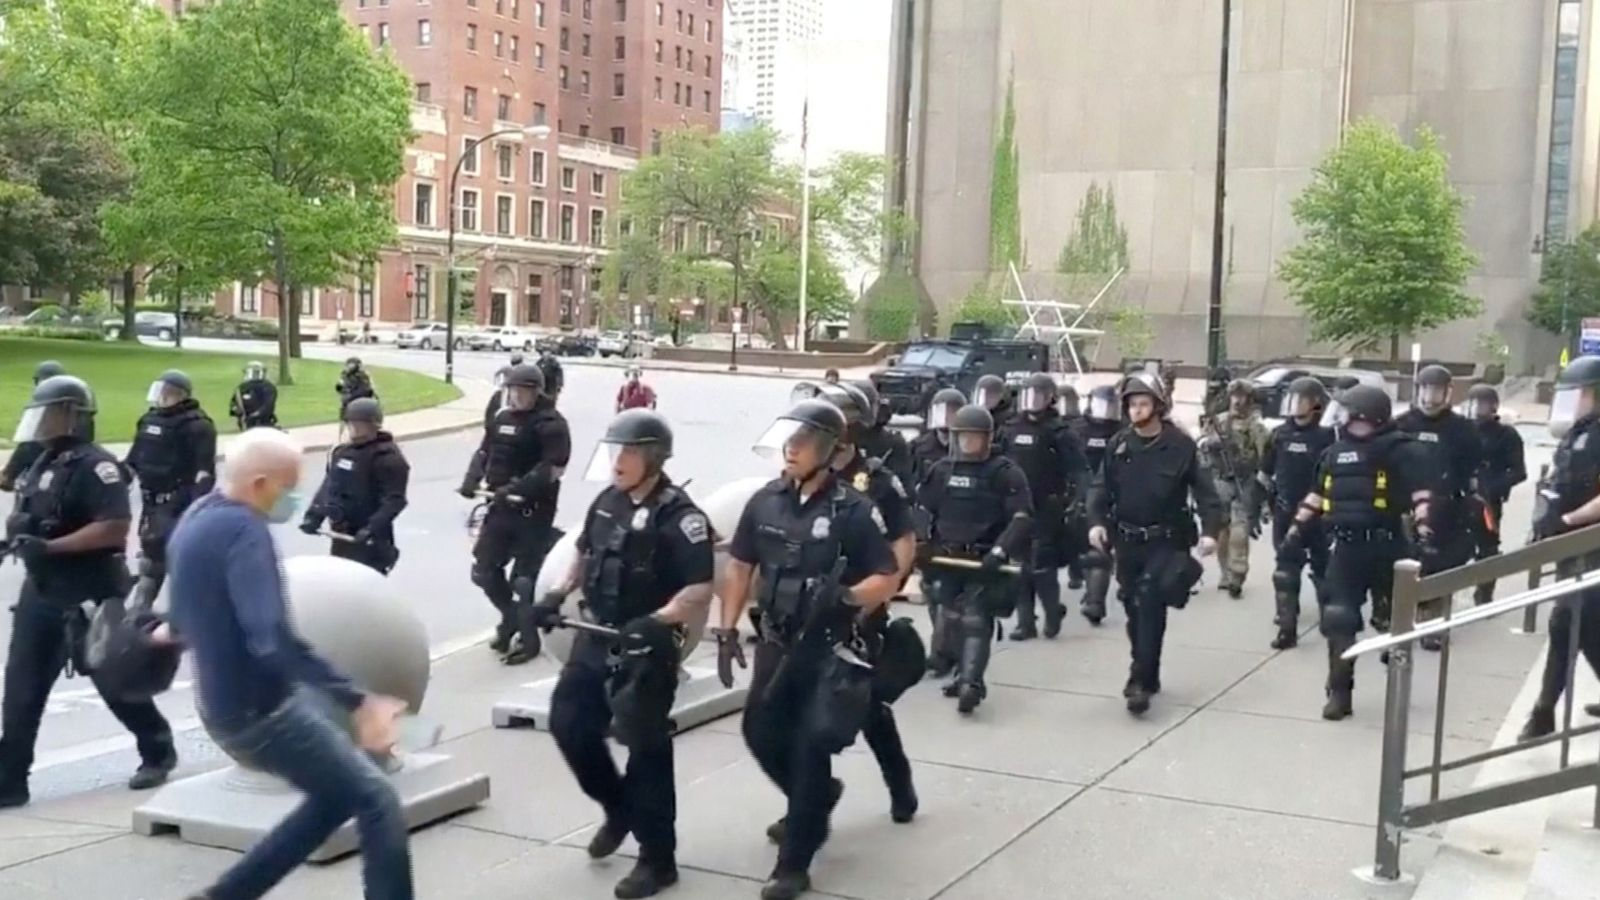 Entire police unit resigns 'in disgust' at suspension of officers who shoved elderly man to ground